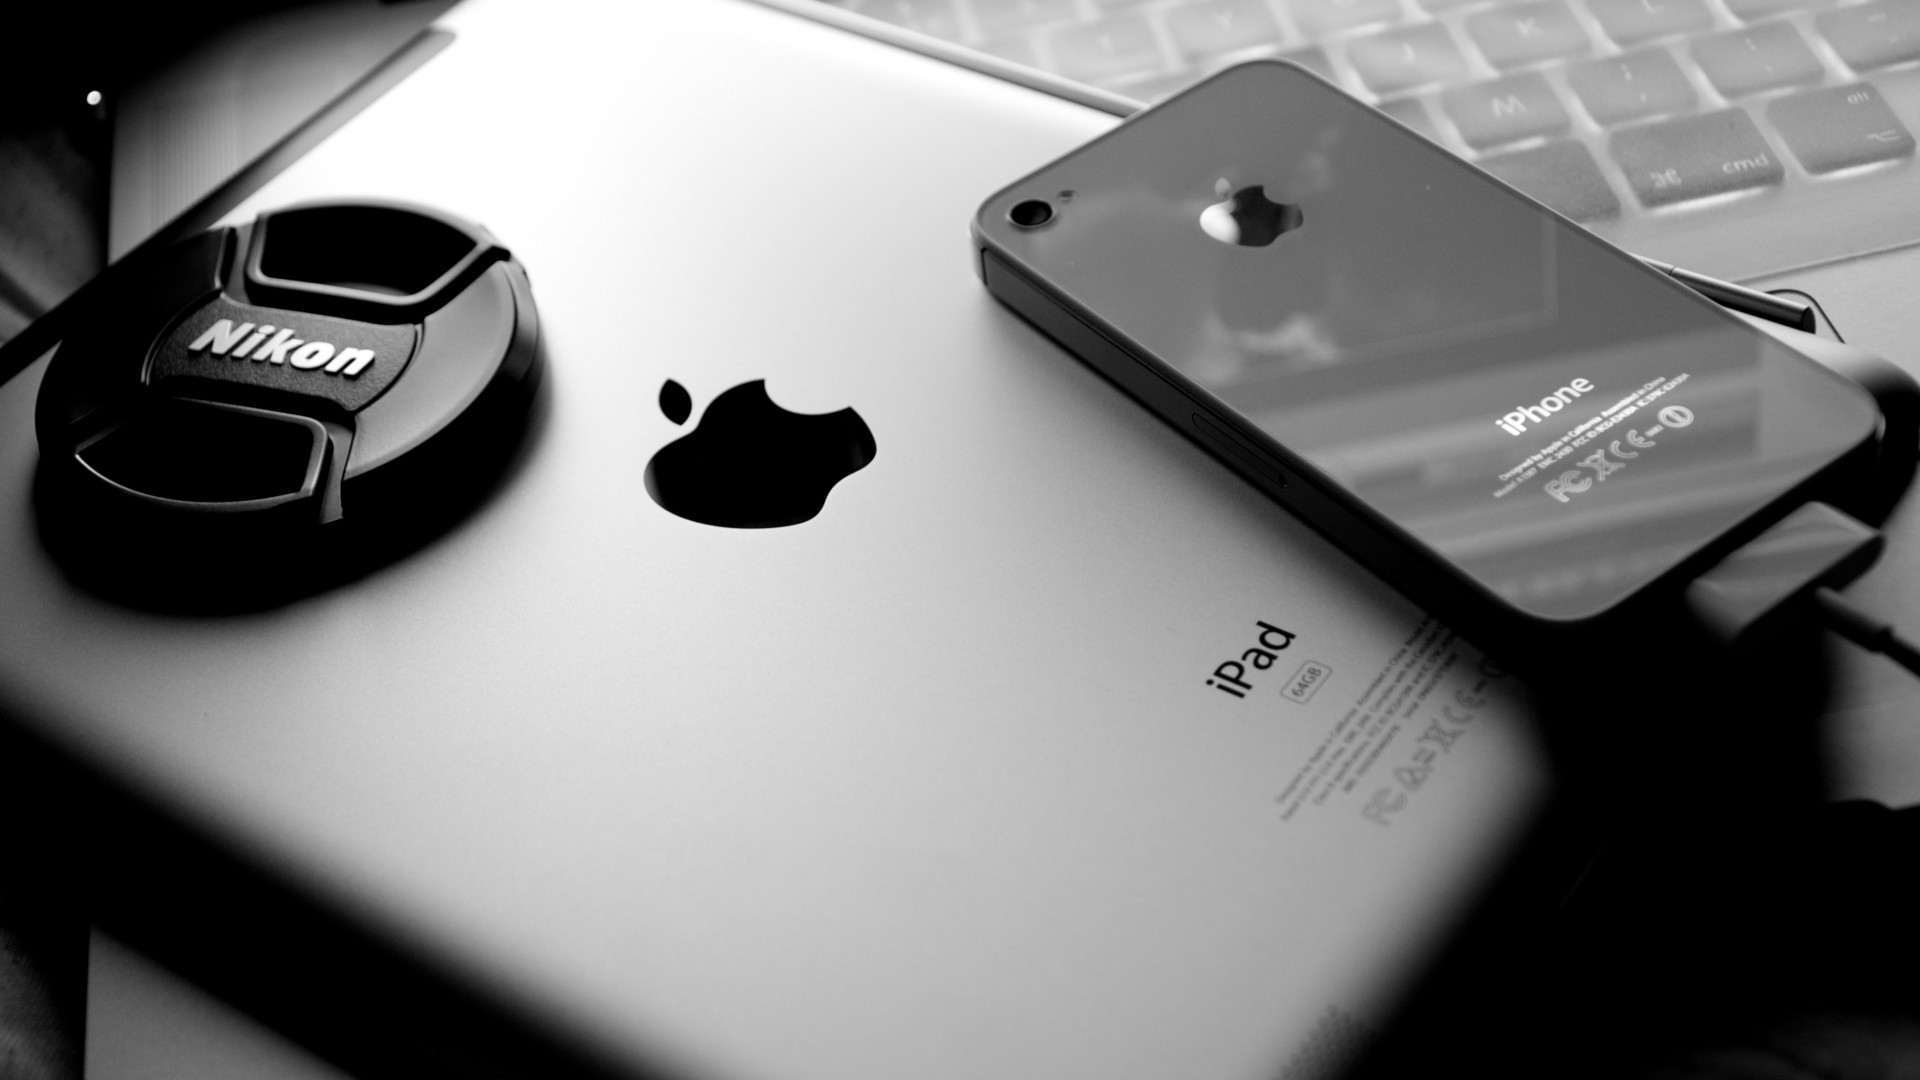 Black-And-White-Apple-Inc-IPad-Apples-IPhone-wallpaper-wpc9002914